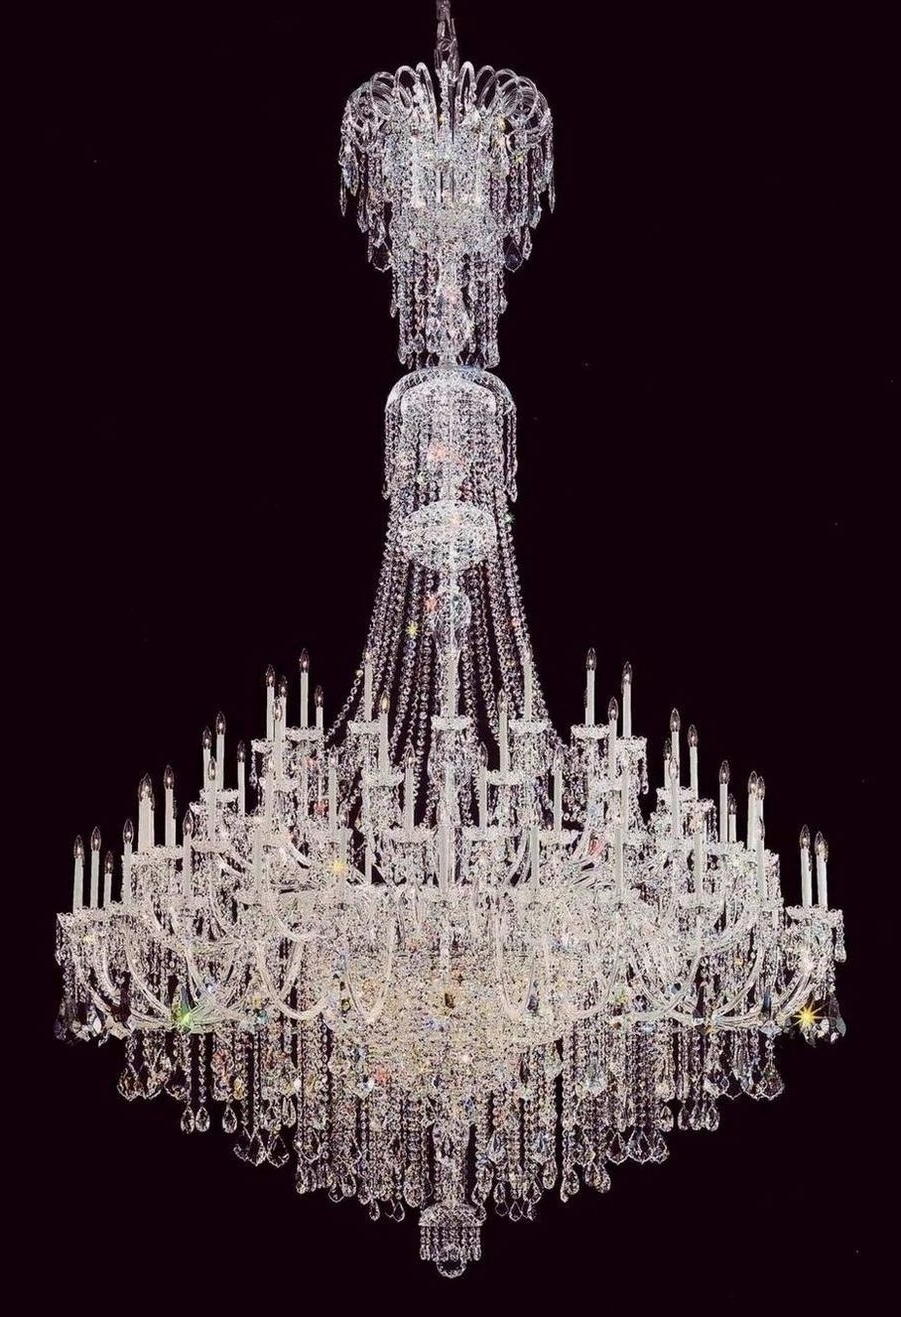 Cheap Foyer Crystal Chandelier, Buy Quality Foyer Chandelier Inside 2018 Huge Crystal Chandeliers (View 4 of 15)